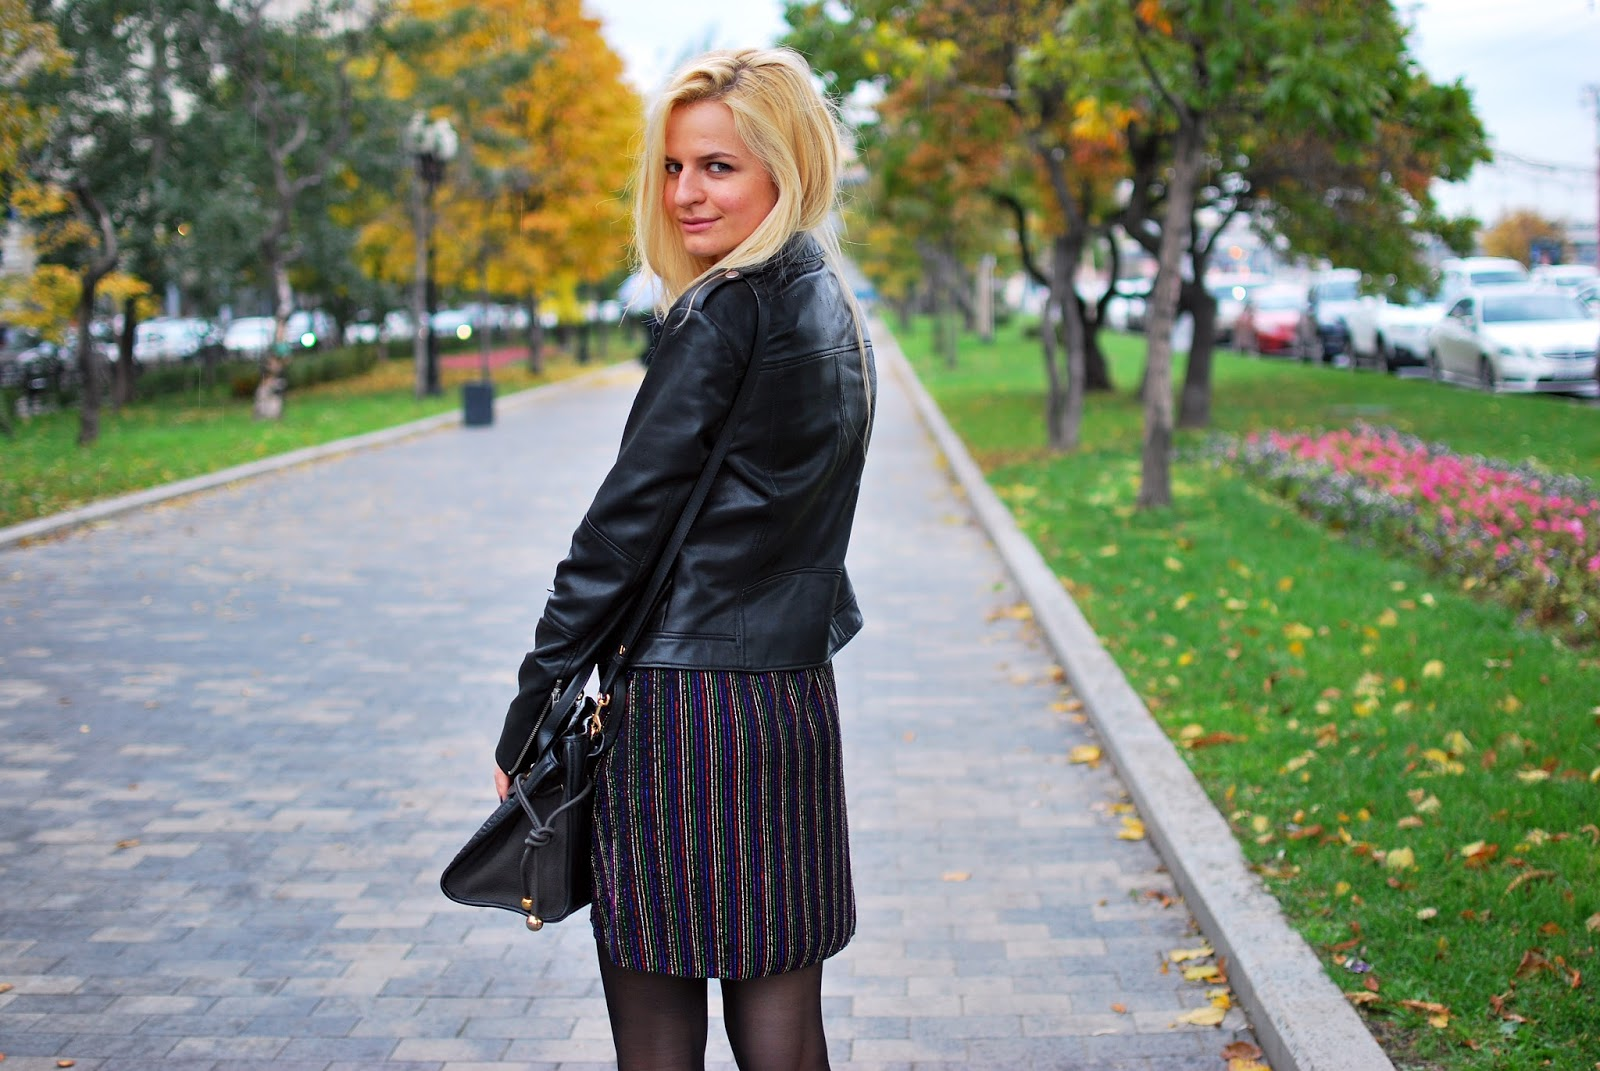 biker jacket outfit, autumn outfit adea, fashion blogger moscow